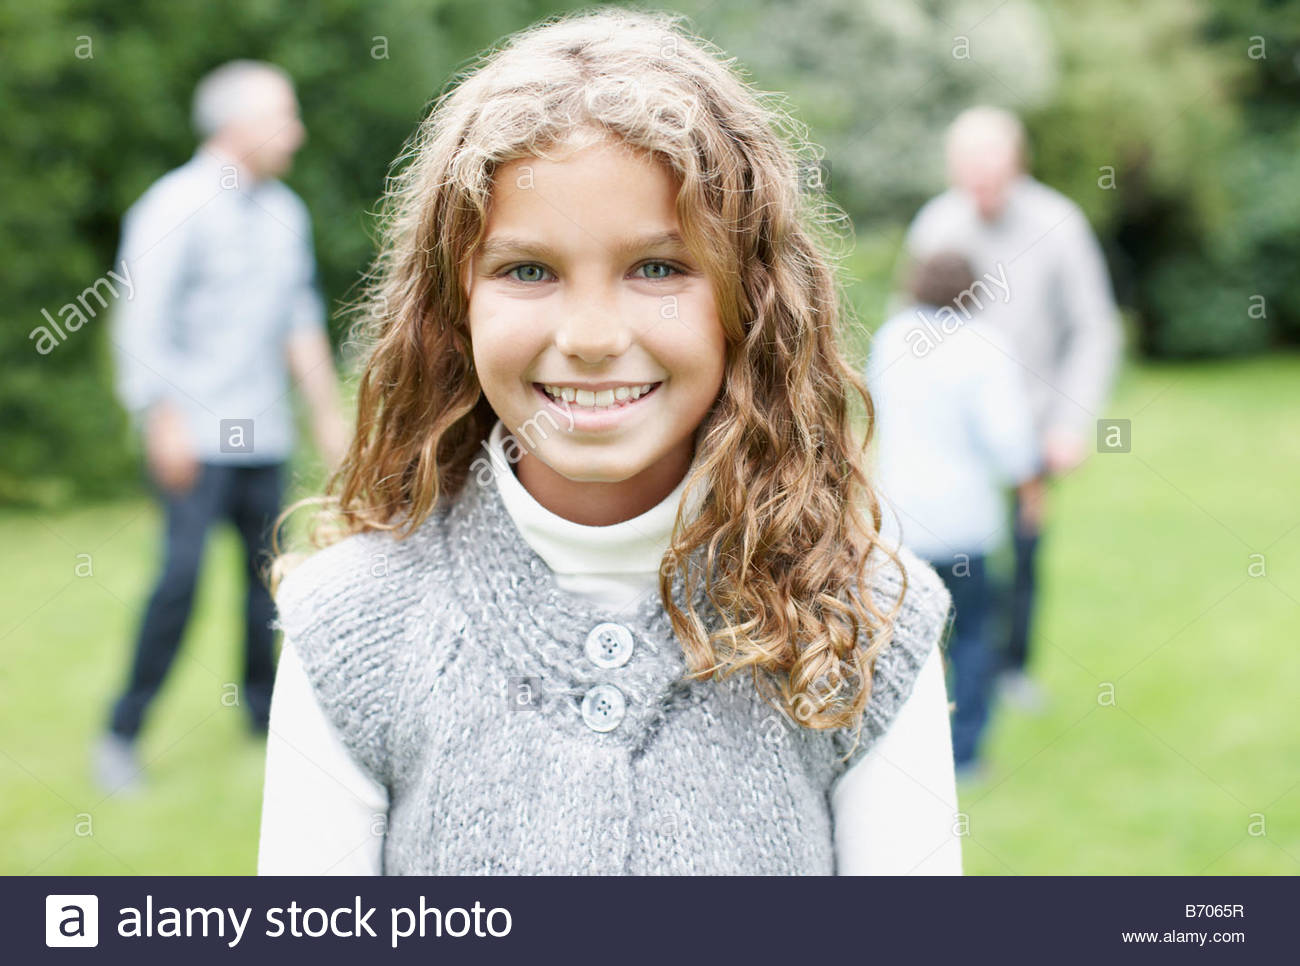 Girl in backyard with family - Stock Image